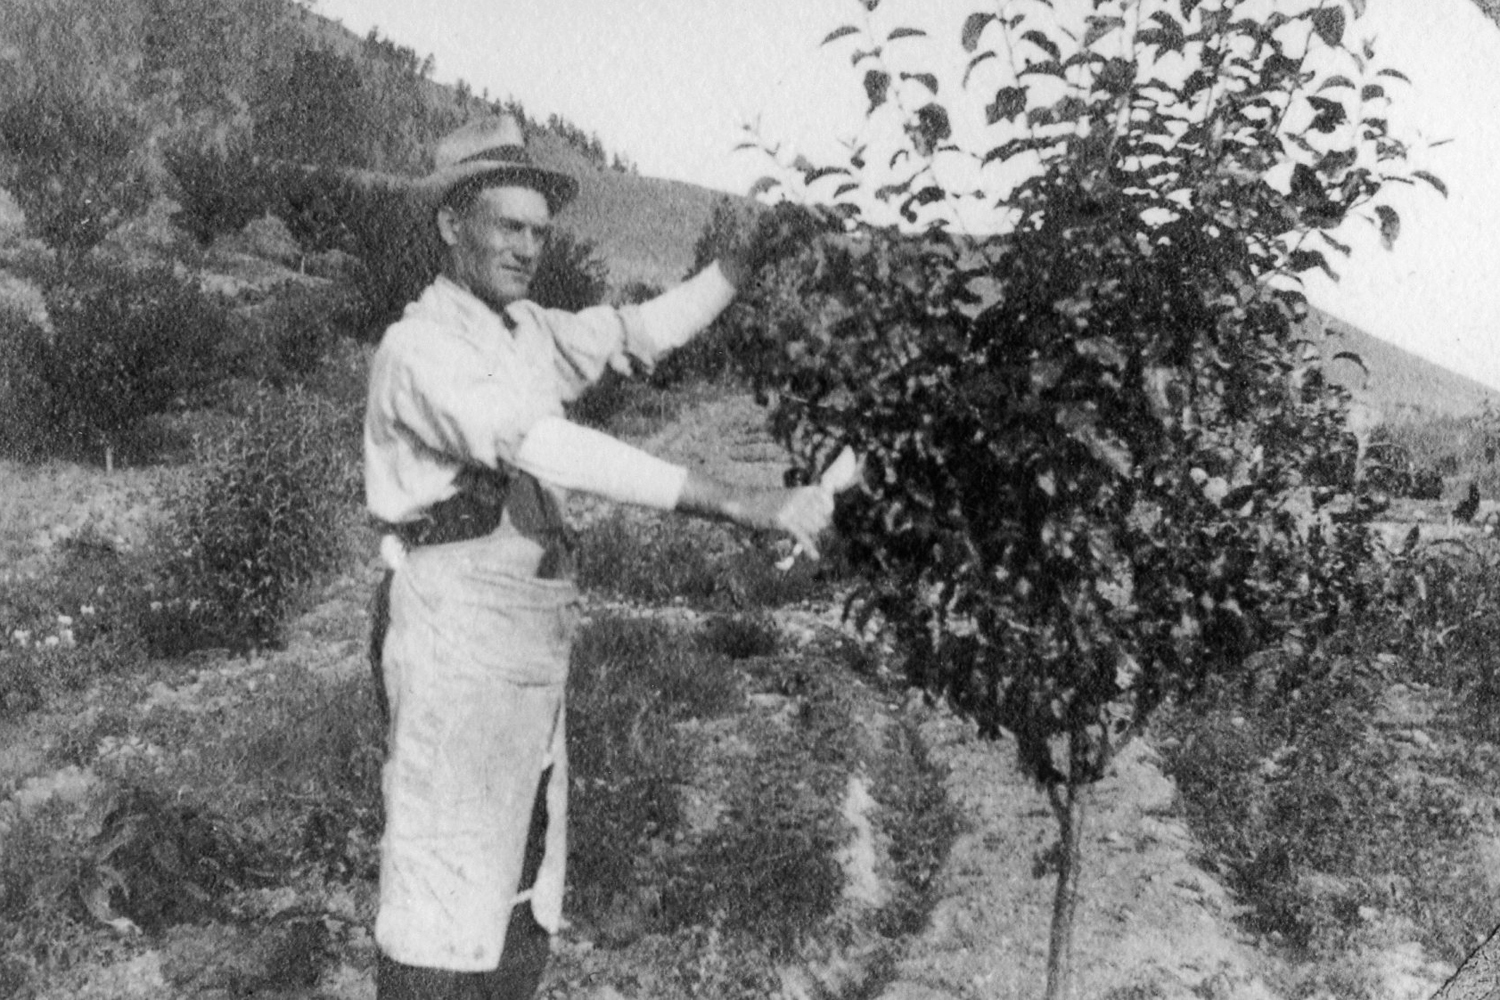 Harry Tavender pruning the first apple trees on the property, 1912